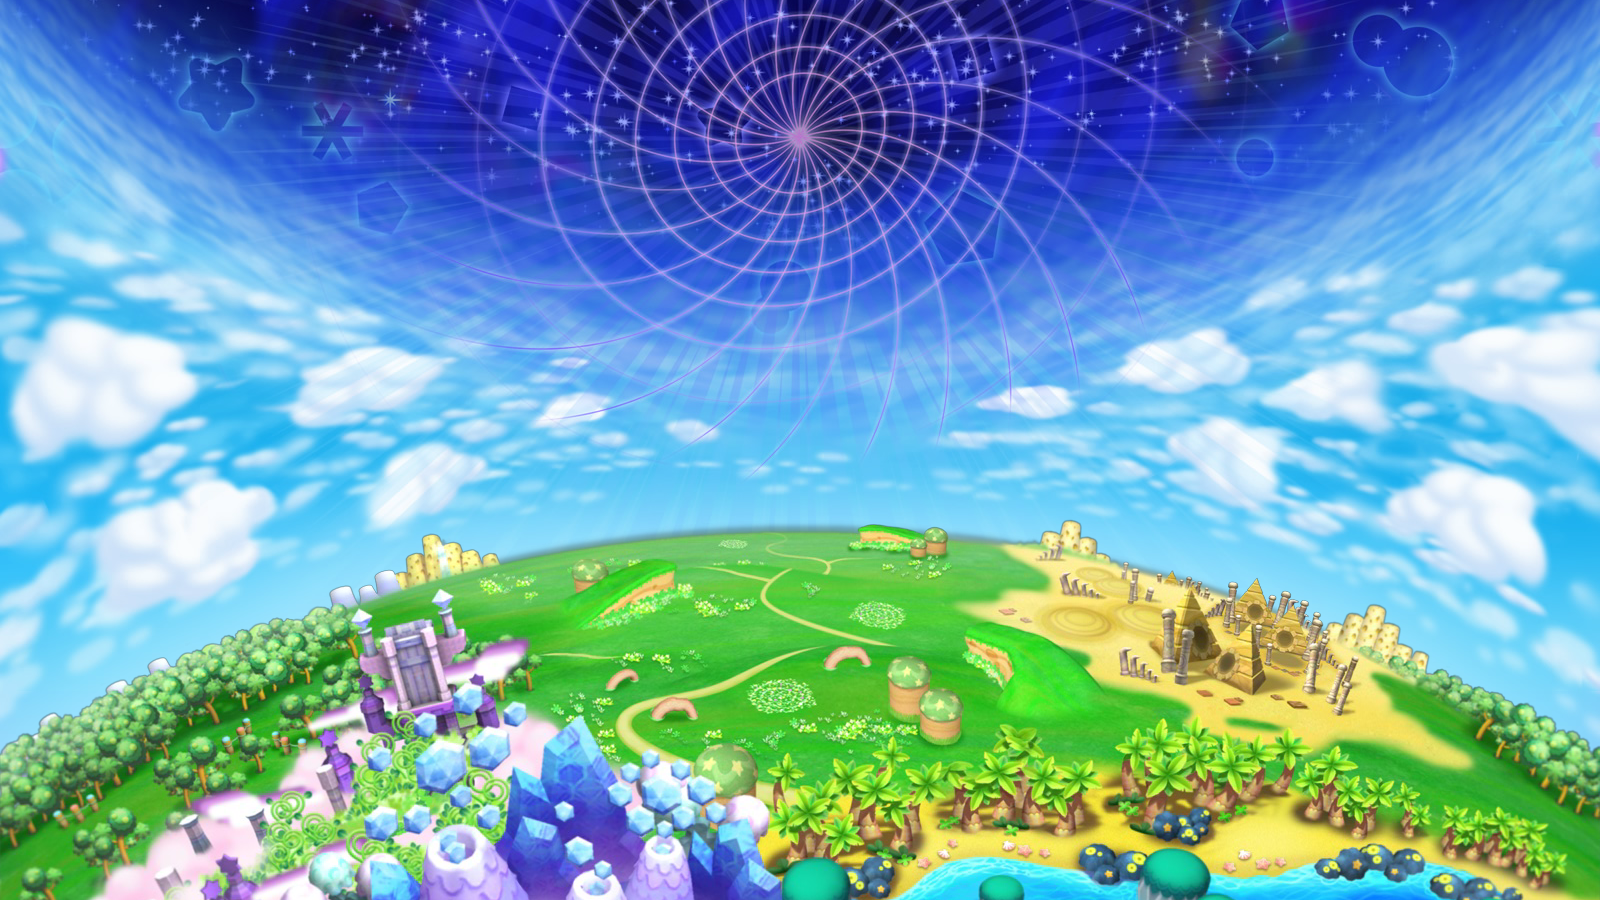 Free Download Kirby S Return To Dream Land Artwork Dream Land Name